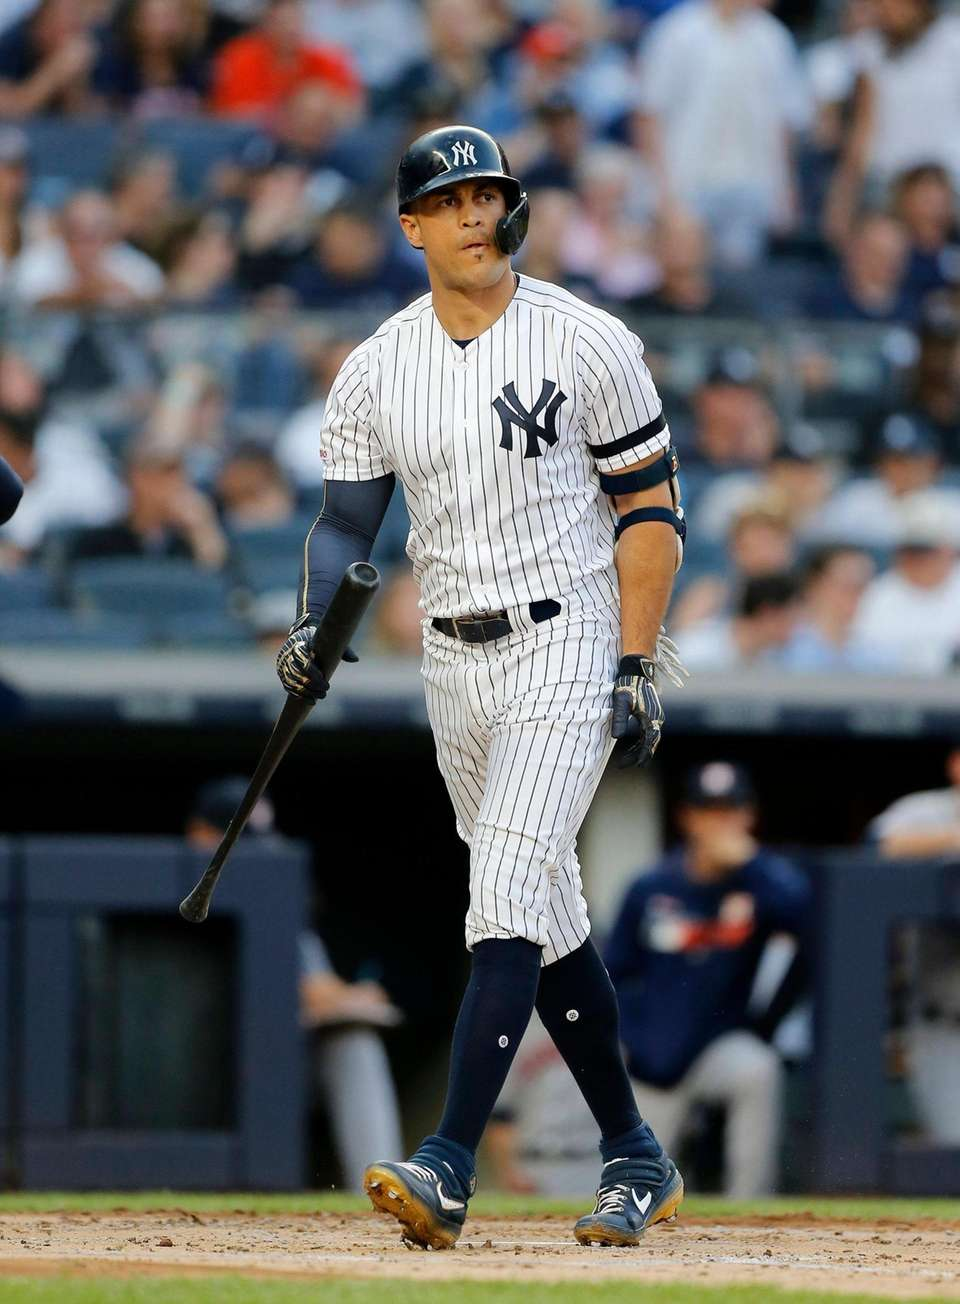 The Yankees' Giancarlo Stanton strikes out during the